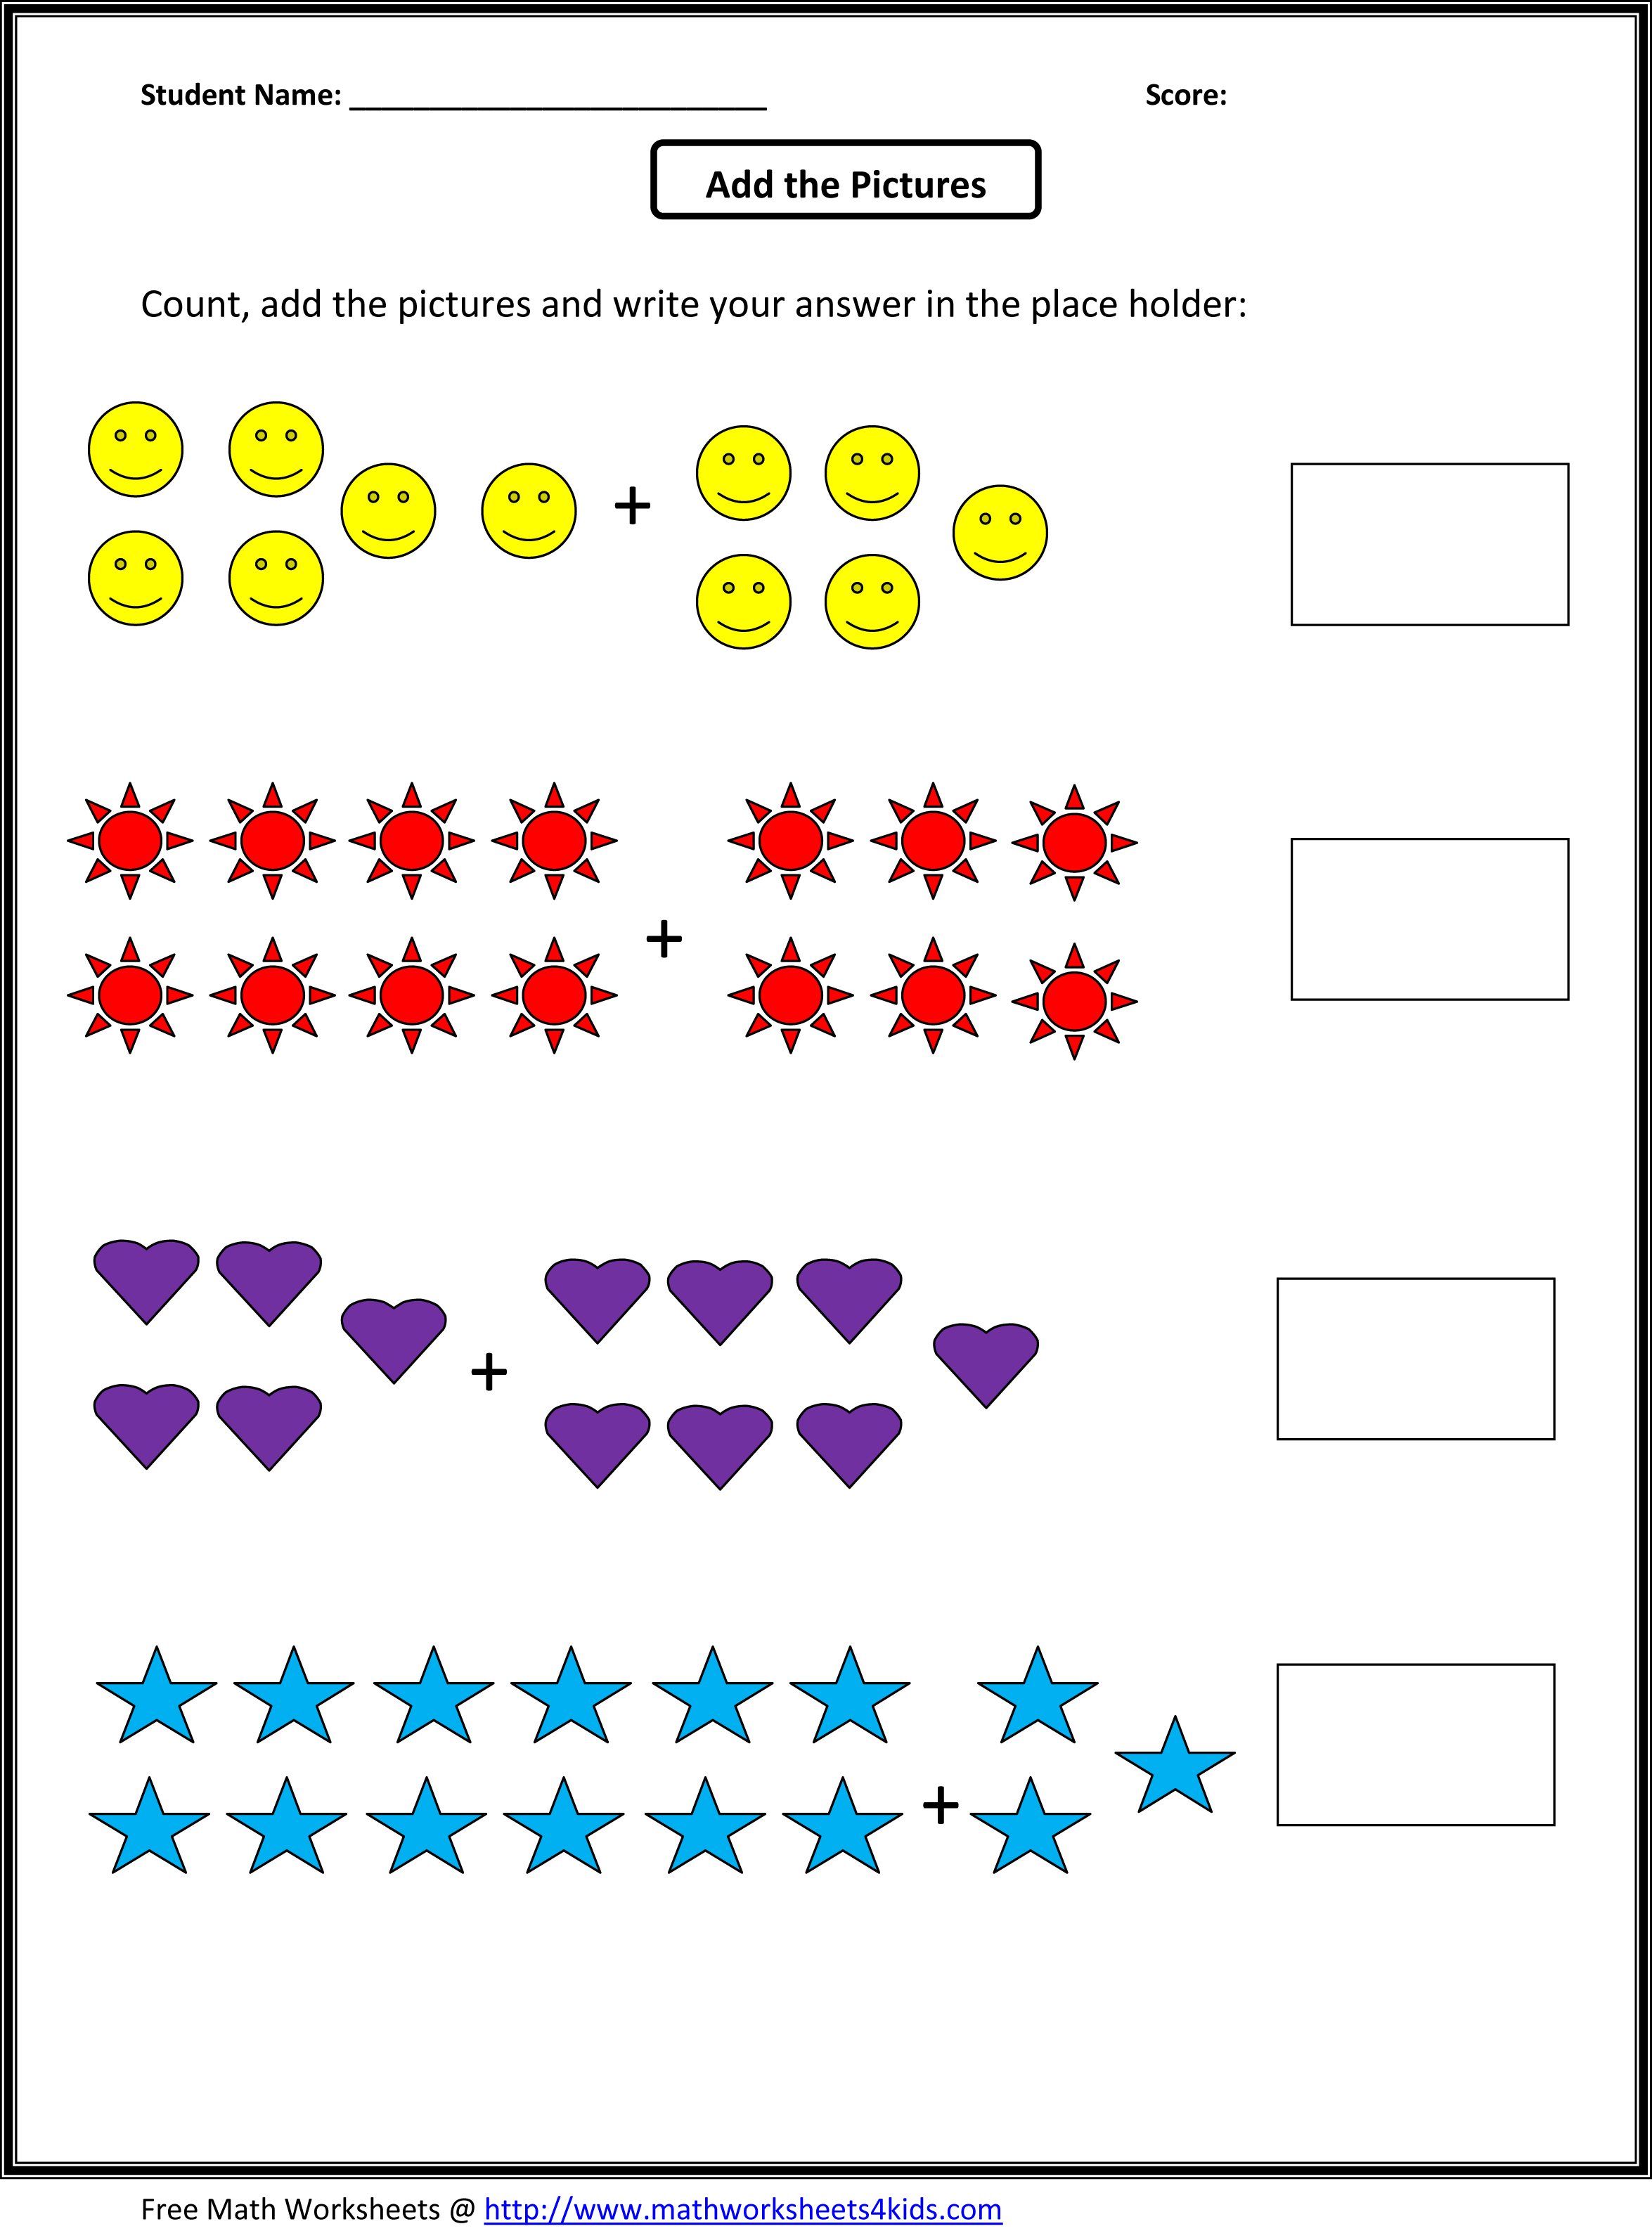 Proatmealus  Inspiring Grade  Maths Worksheet  Reocurent With Luxury Math Worksheets For St Grade Free  Reocurent With Awesome Cursive Penmanship Worksheets Also Persuasive Writing Worksheet In Addition Elasped Time Worksheets And Joe And Charlie Th Step Worksheet As Well As Comma In A Series Worksheet Additionally Free Printable Worksheets For St Graders From Reocurentcom With Proatmealus  Luxury Grade  Maths Worksheet  Reocurent With Awesome Math Worksheets For St Grade Free  Reocurent And Inspiring Cursive Penmanship Worksheets Also Persuasive Writing Worksheet In Addition Elasped Time Worksheets From Reocurentcom